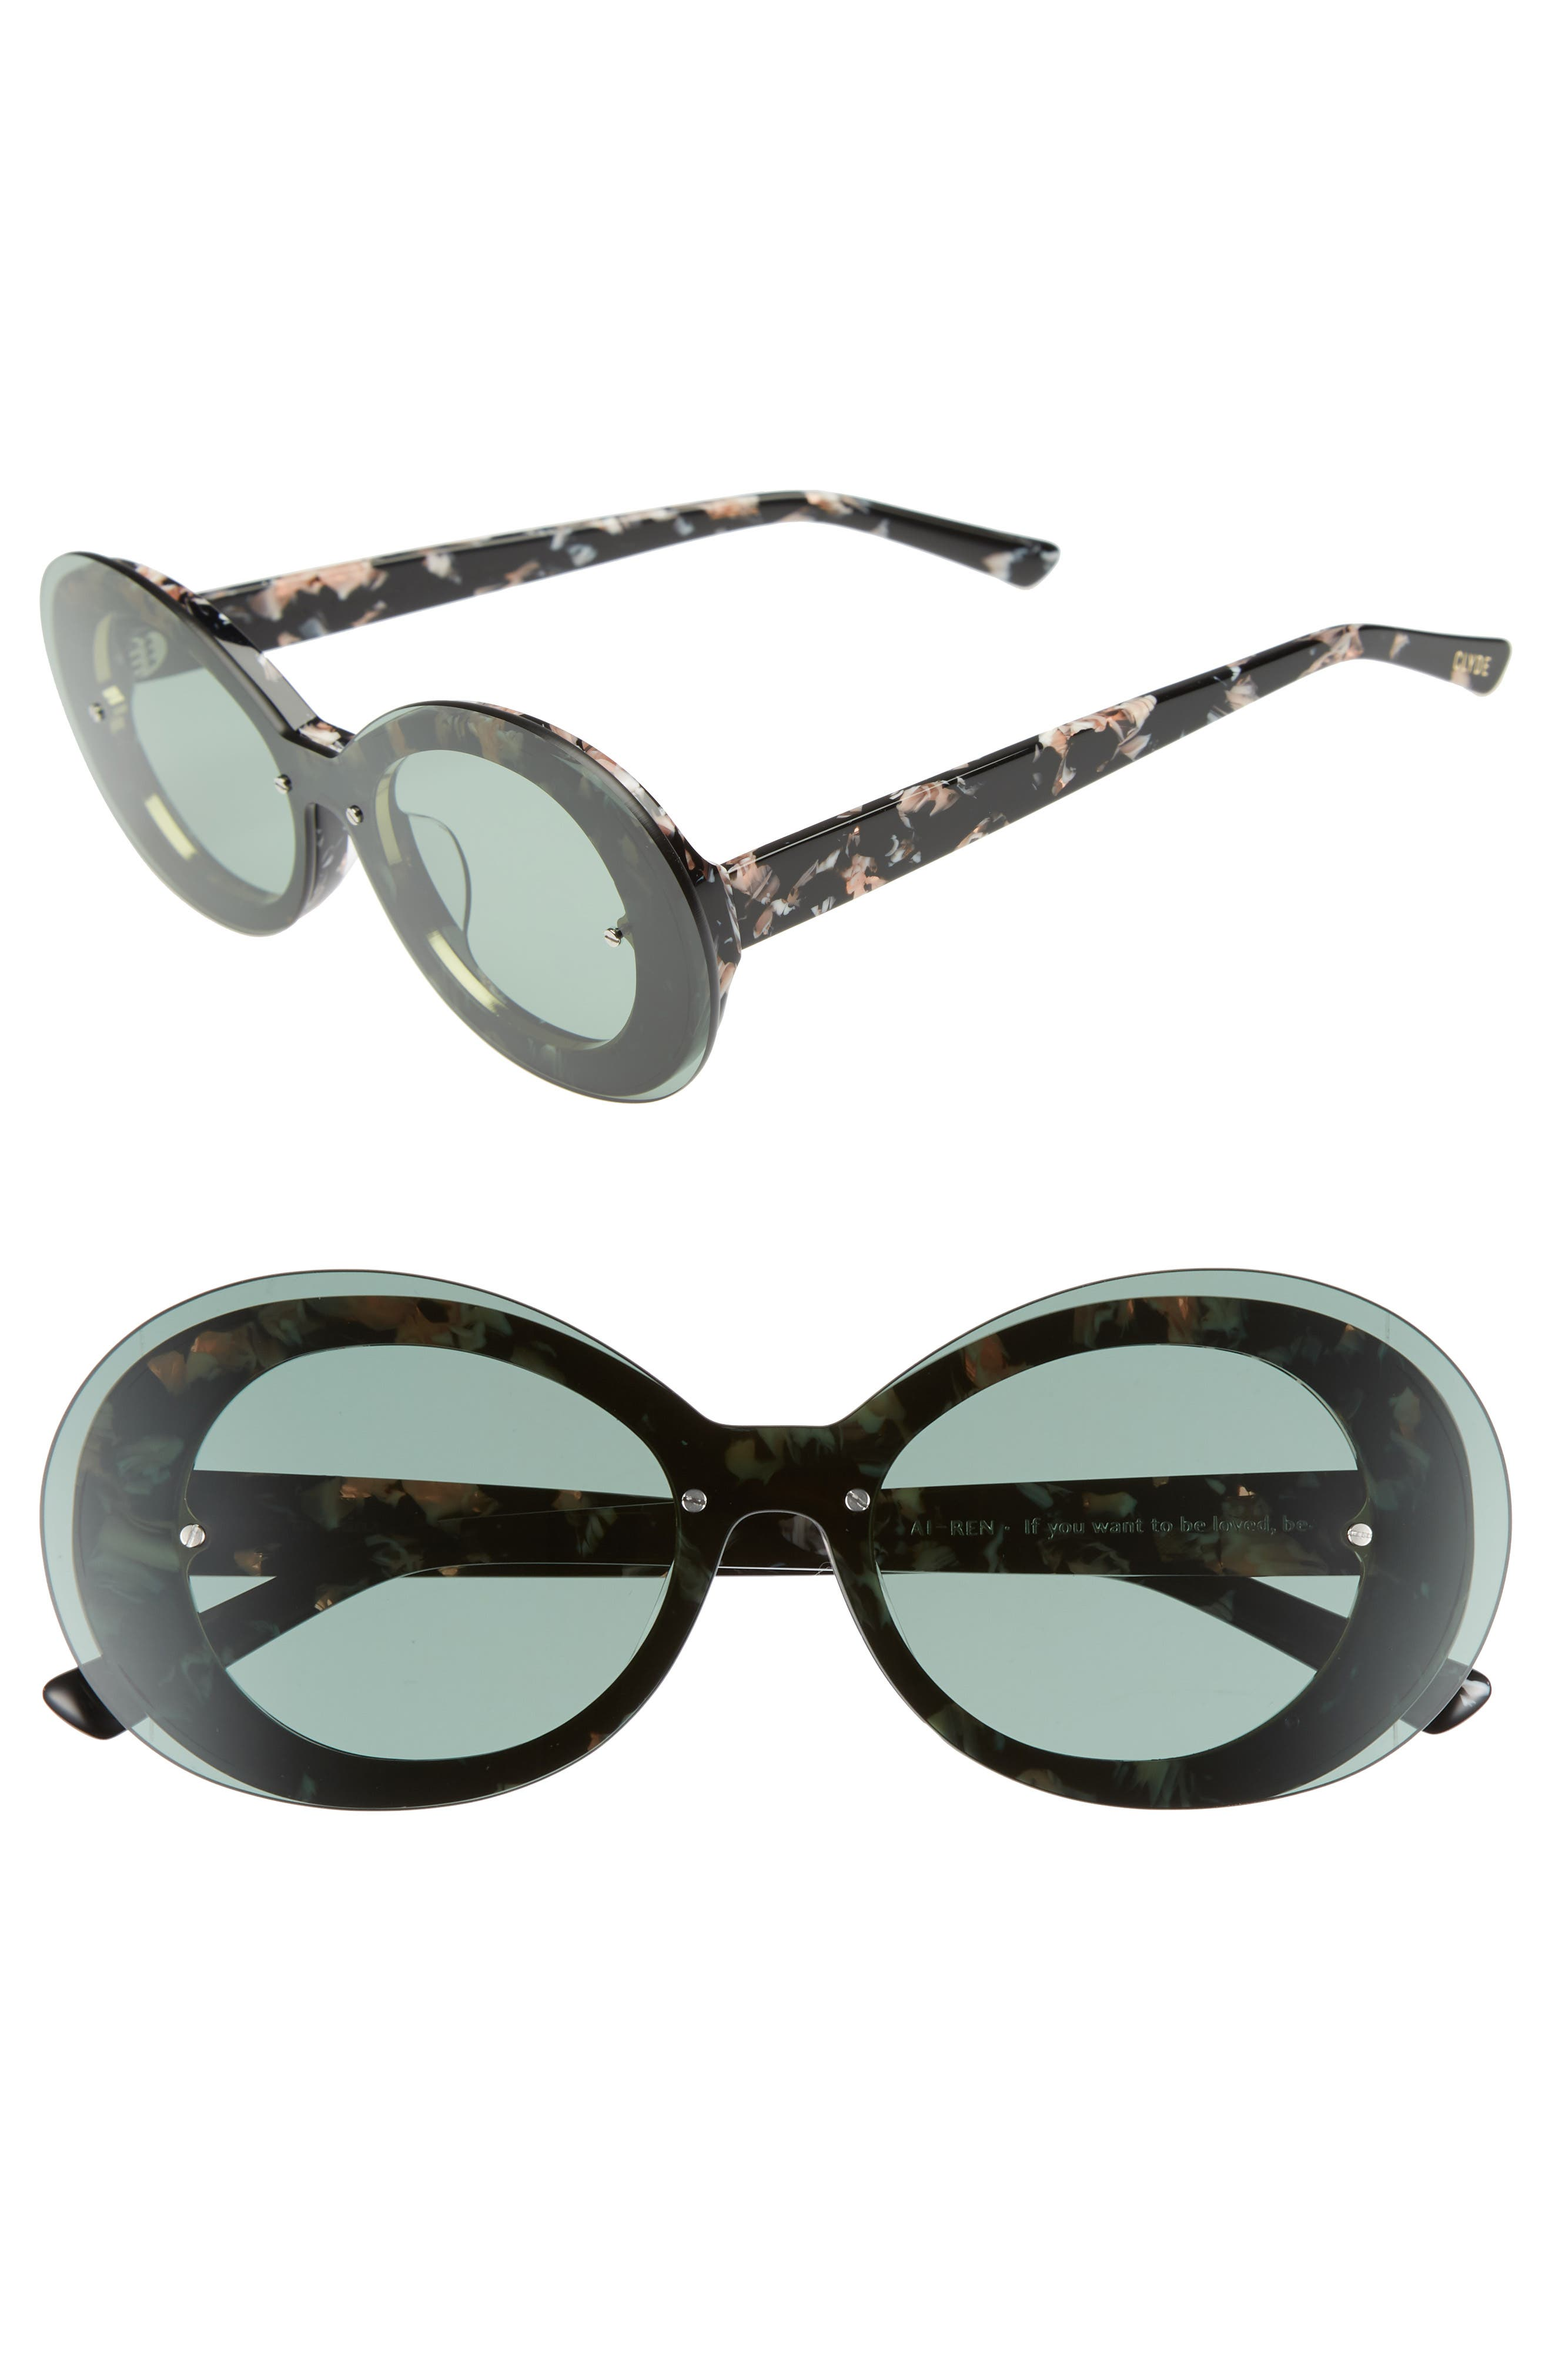 Ai-Ren 51mm Round Sunglasses,                         Main,                         color, Marbled Olive